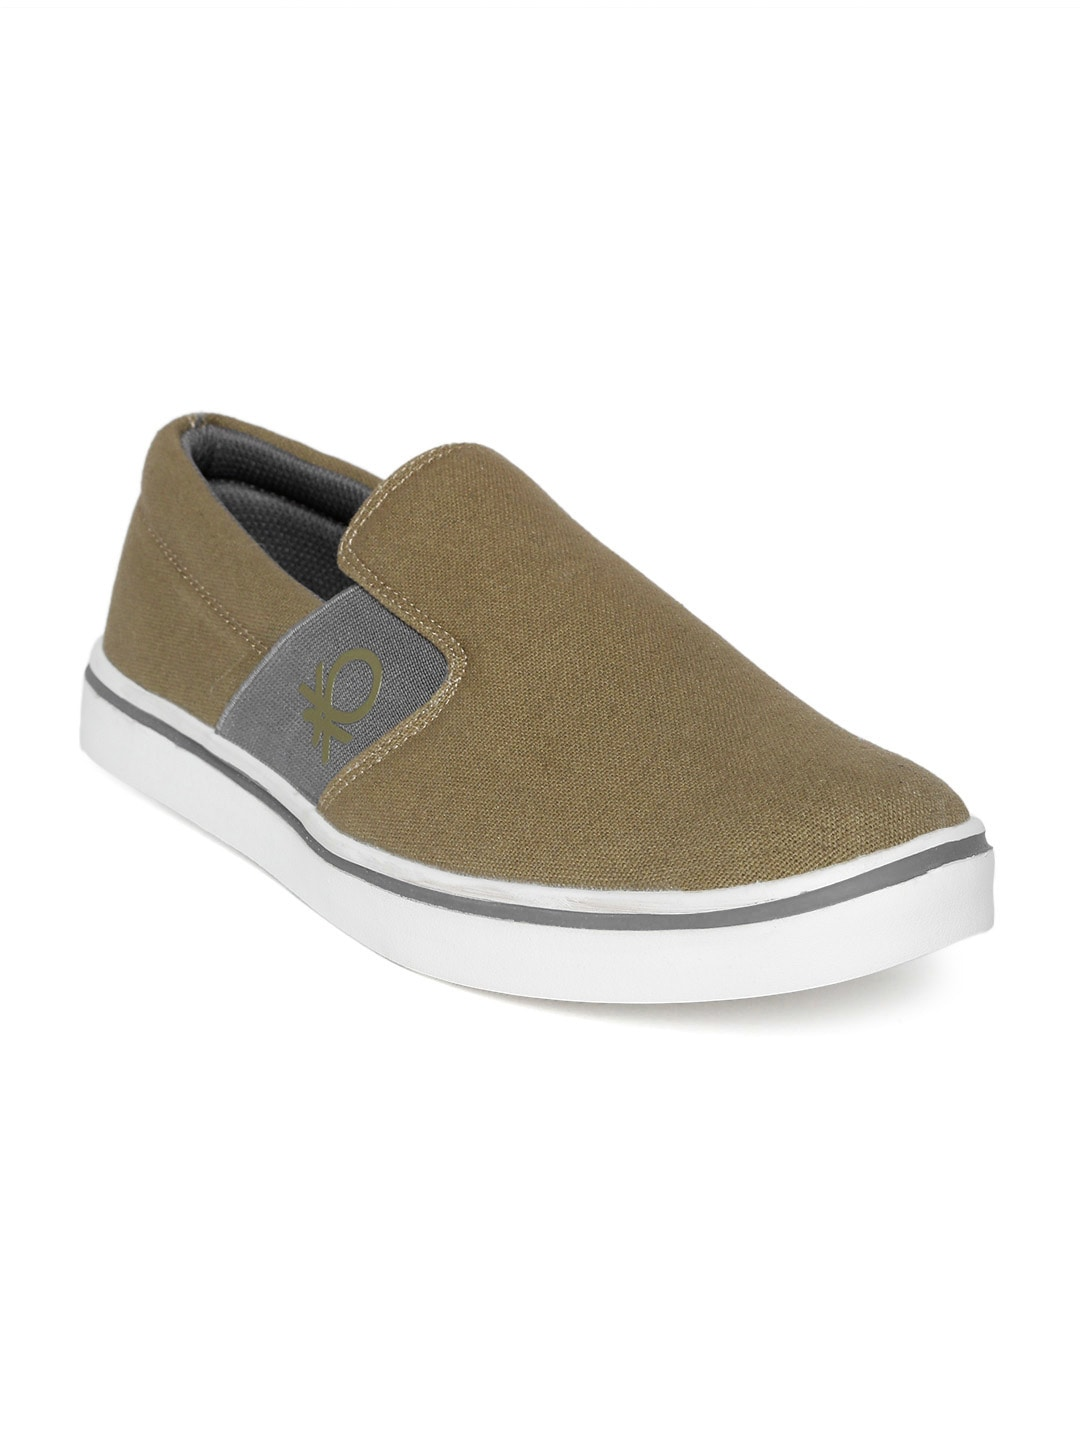 c5f68204d Canvas Casual Shoes - Buy Canvas Casual Shoes online in India